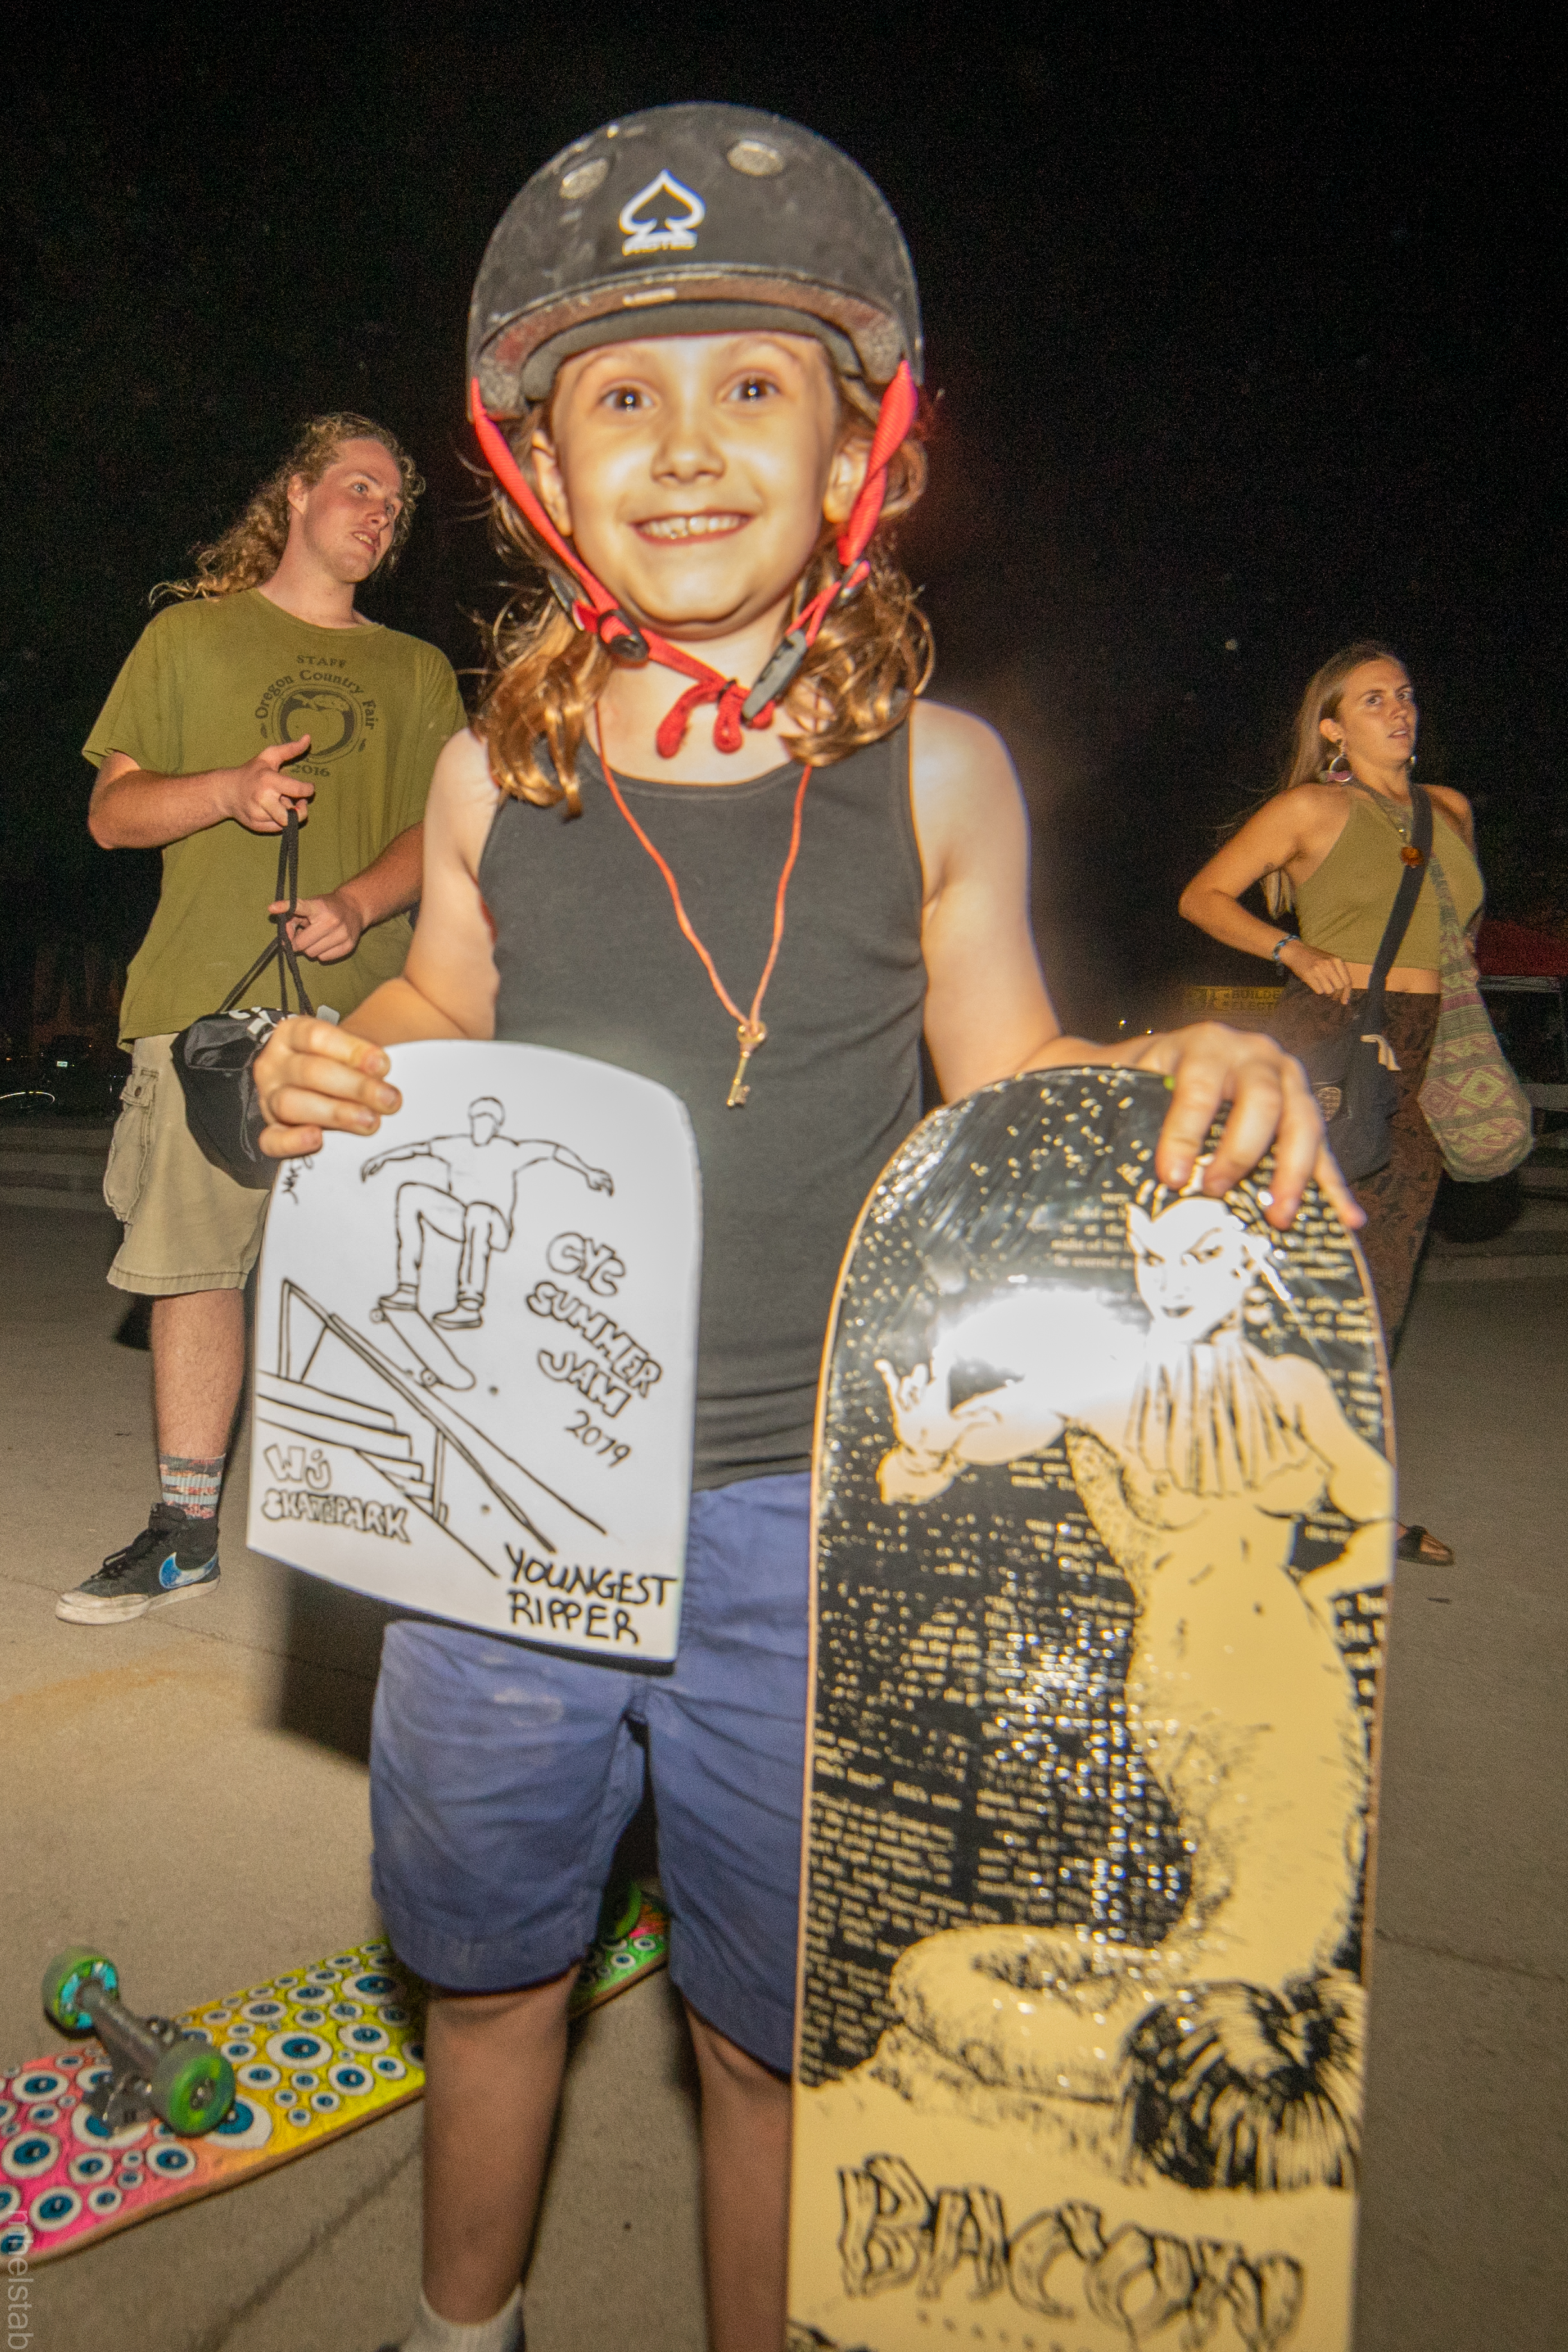 Eve Kessinger - Youngest Ripper